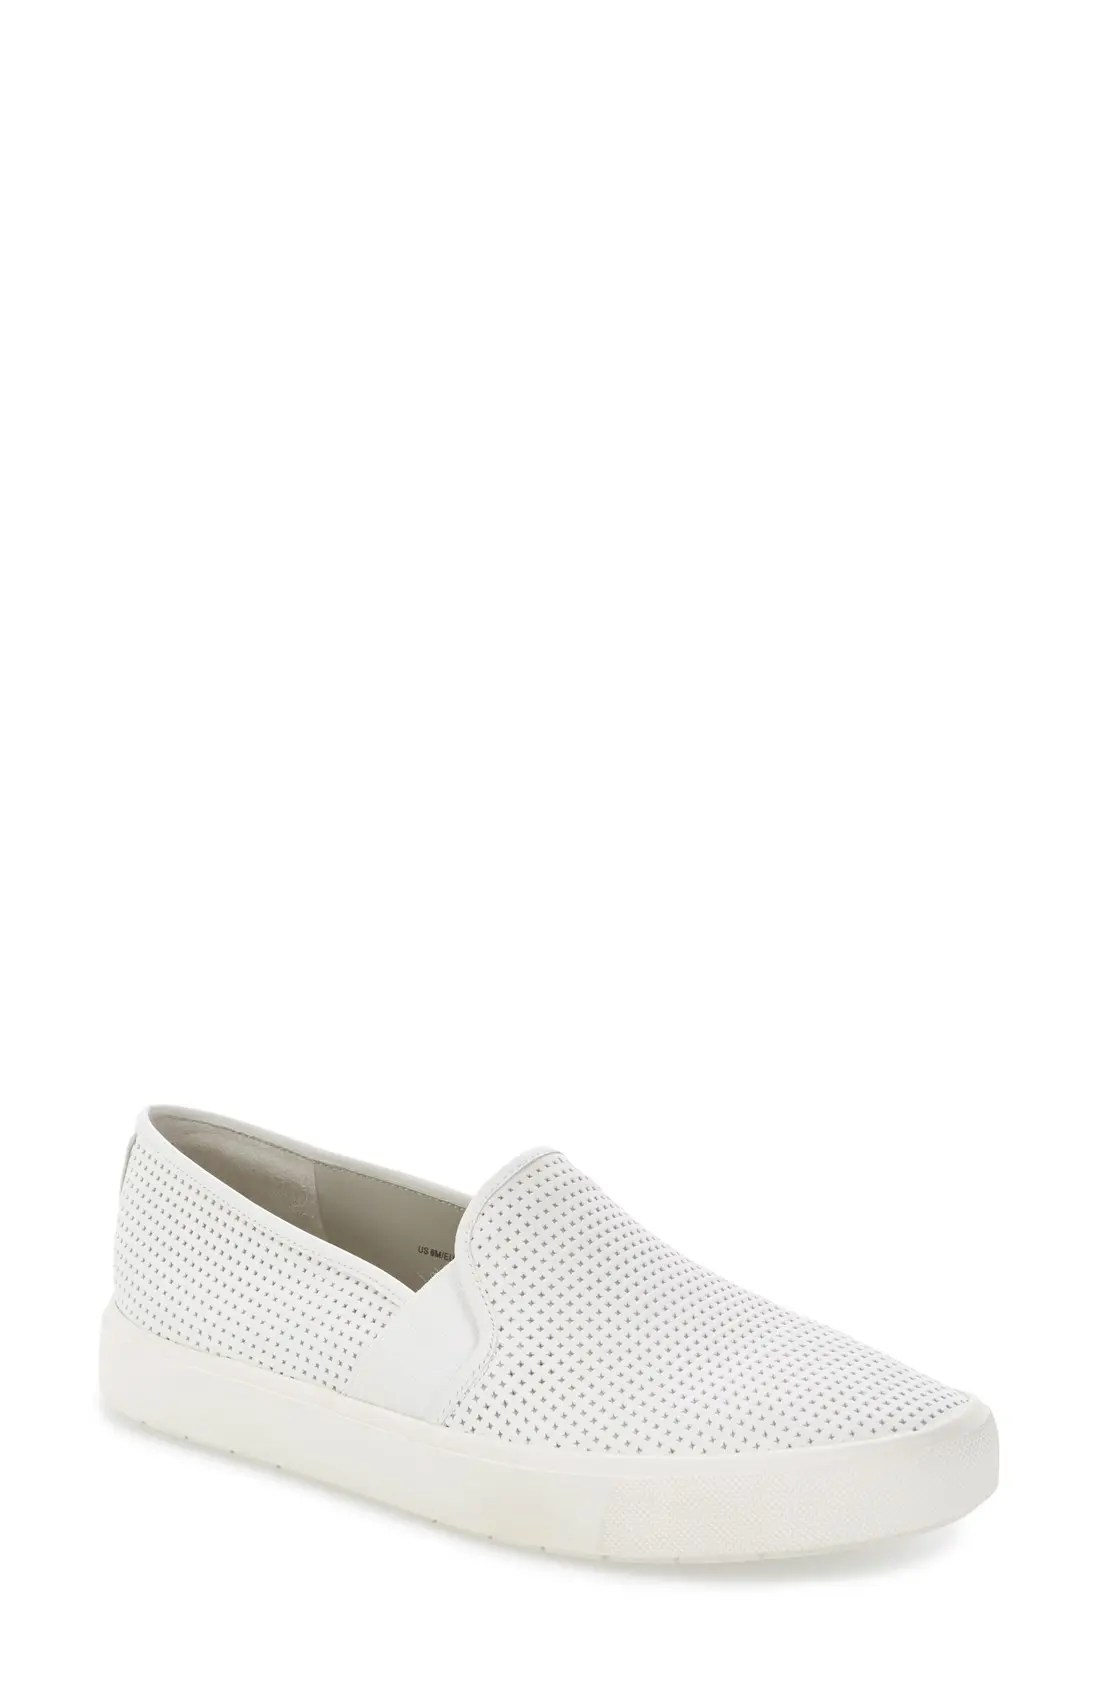 VINCE Blair 5 Slip-On Sneaker, Main, color, WHITE